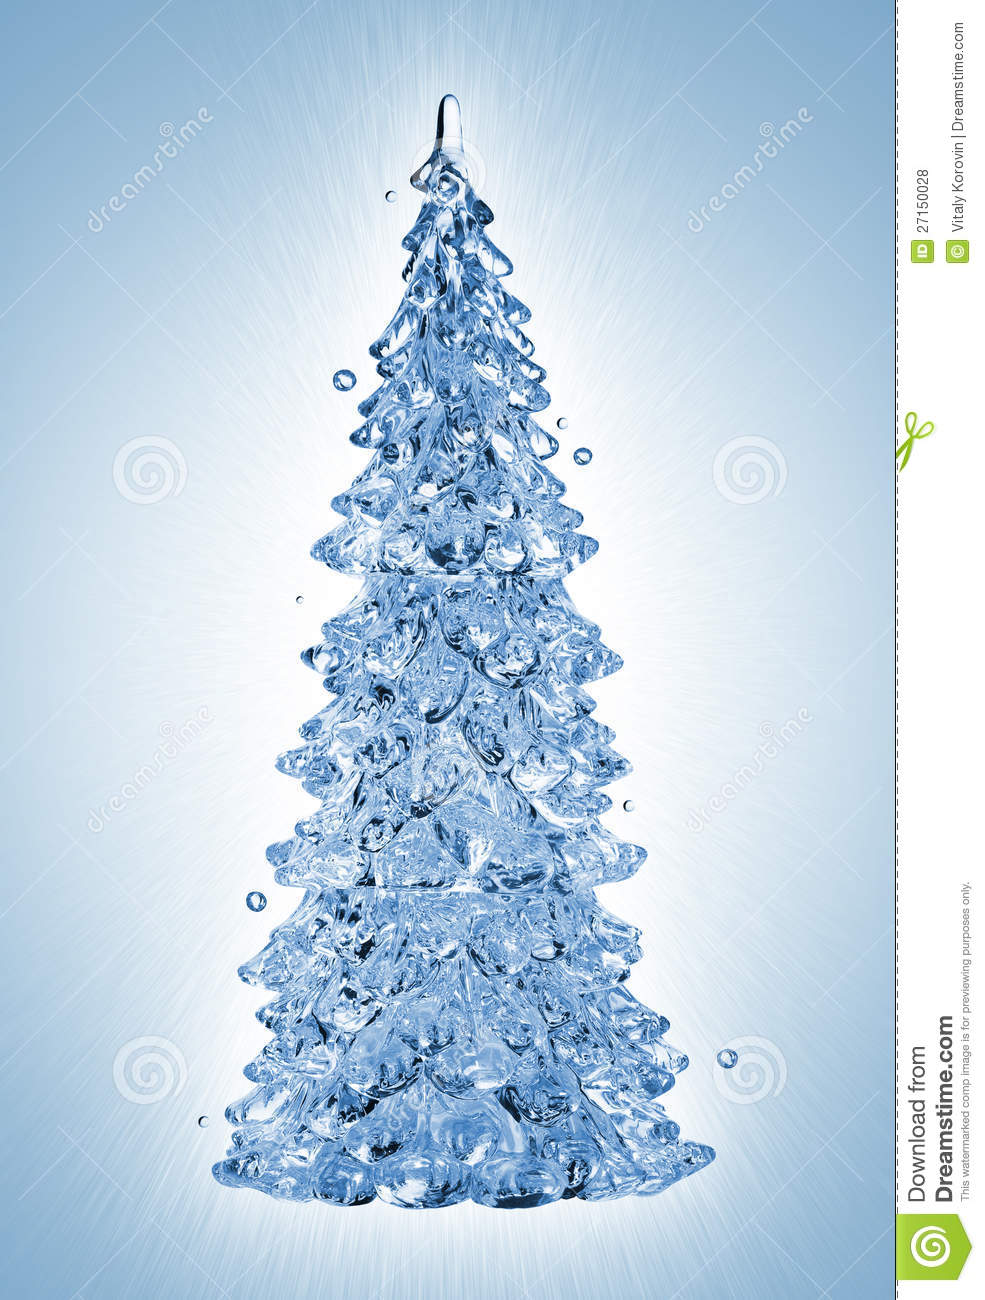 Water Splash Christmas Tree Royalty Free Stock Photos - Image ...